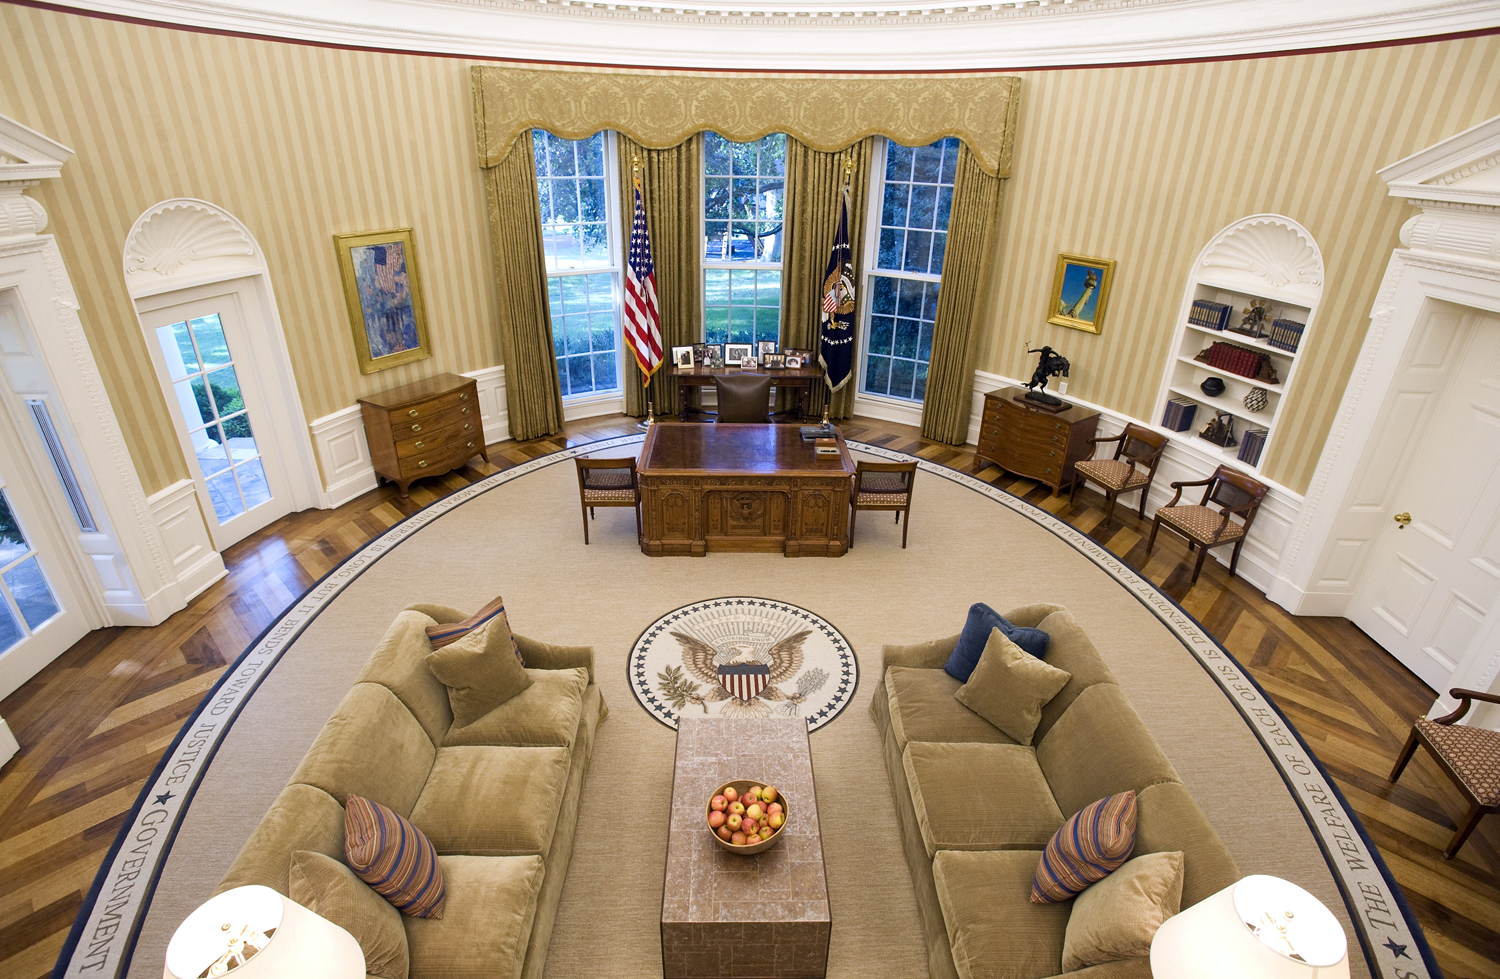 Drapes vs curtains - Inside The White House Oval Office Images Amp Pictures Becuo